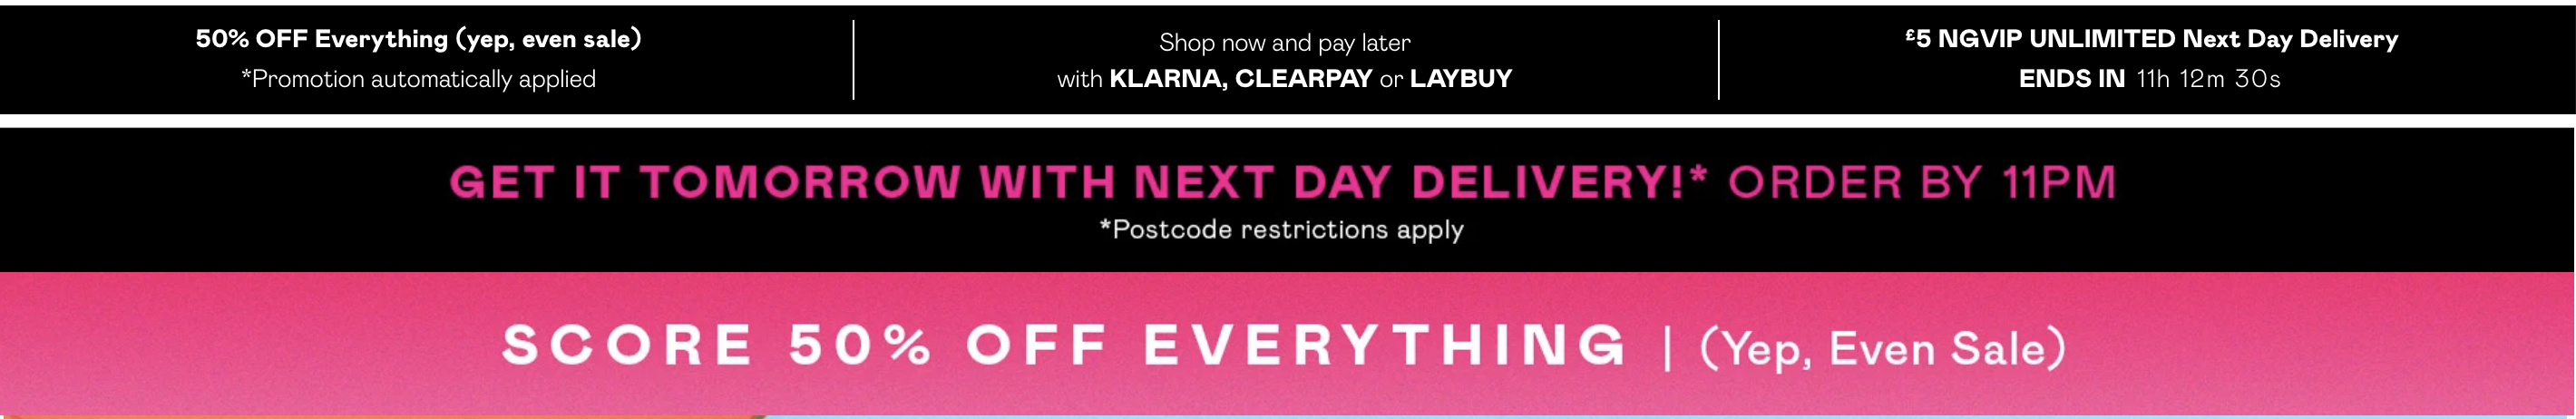 Nasty Gal homepage on the day of publishing